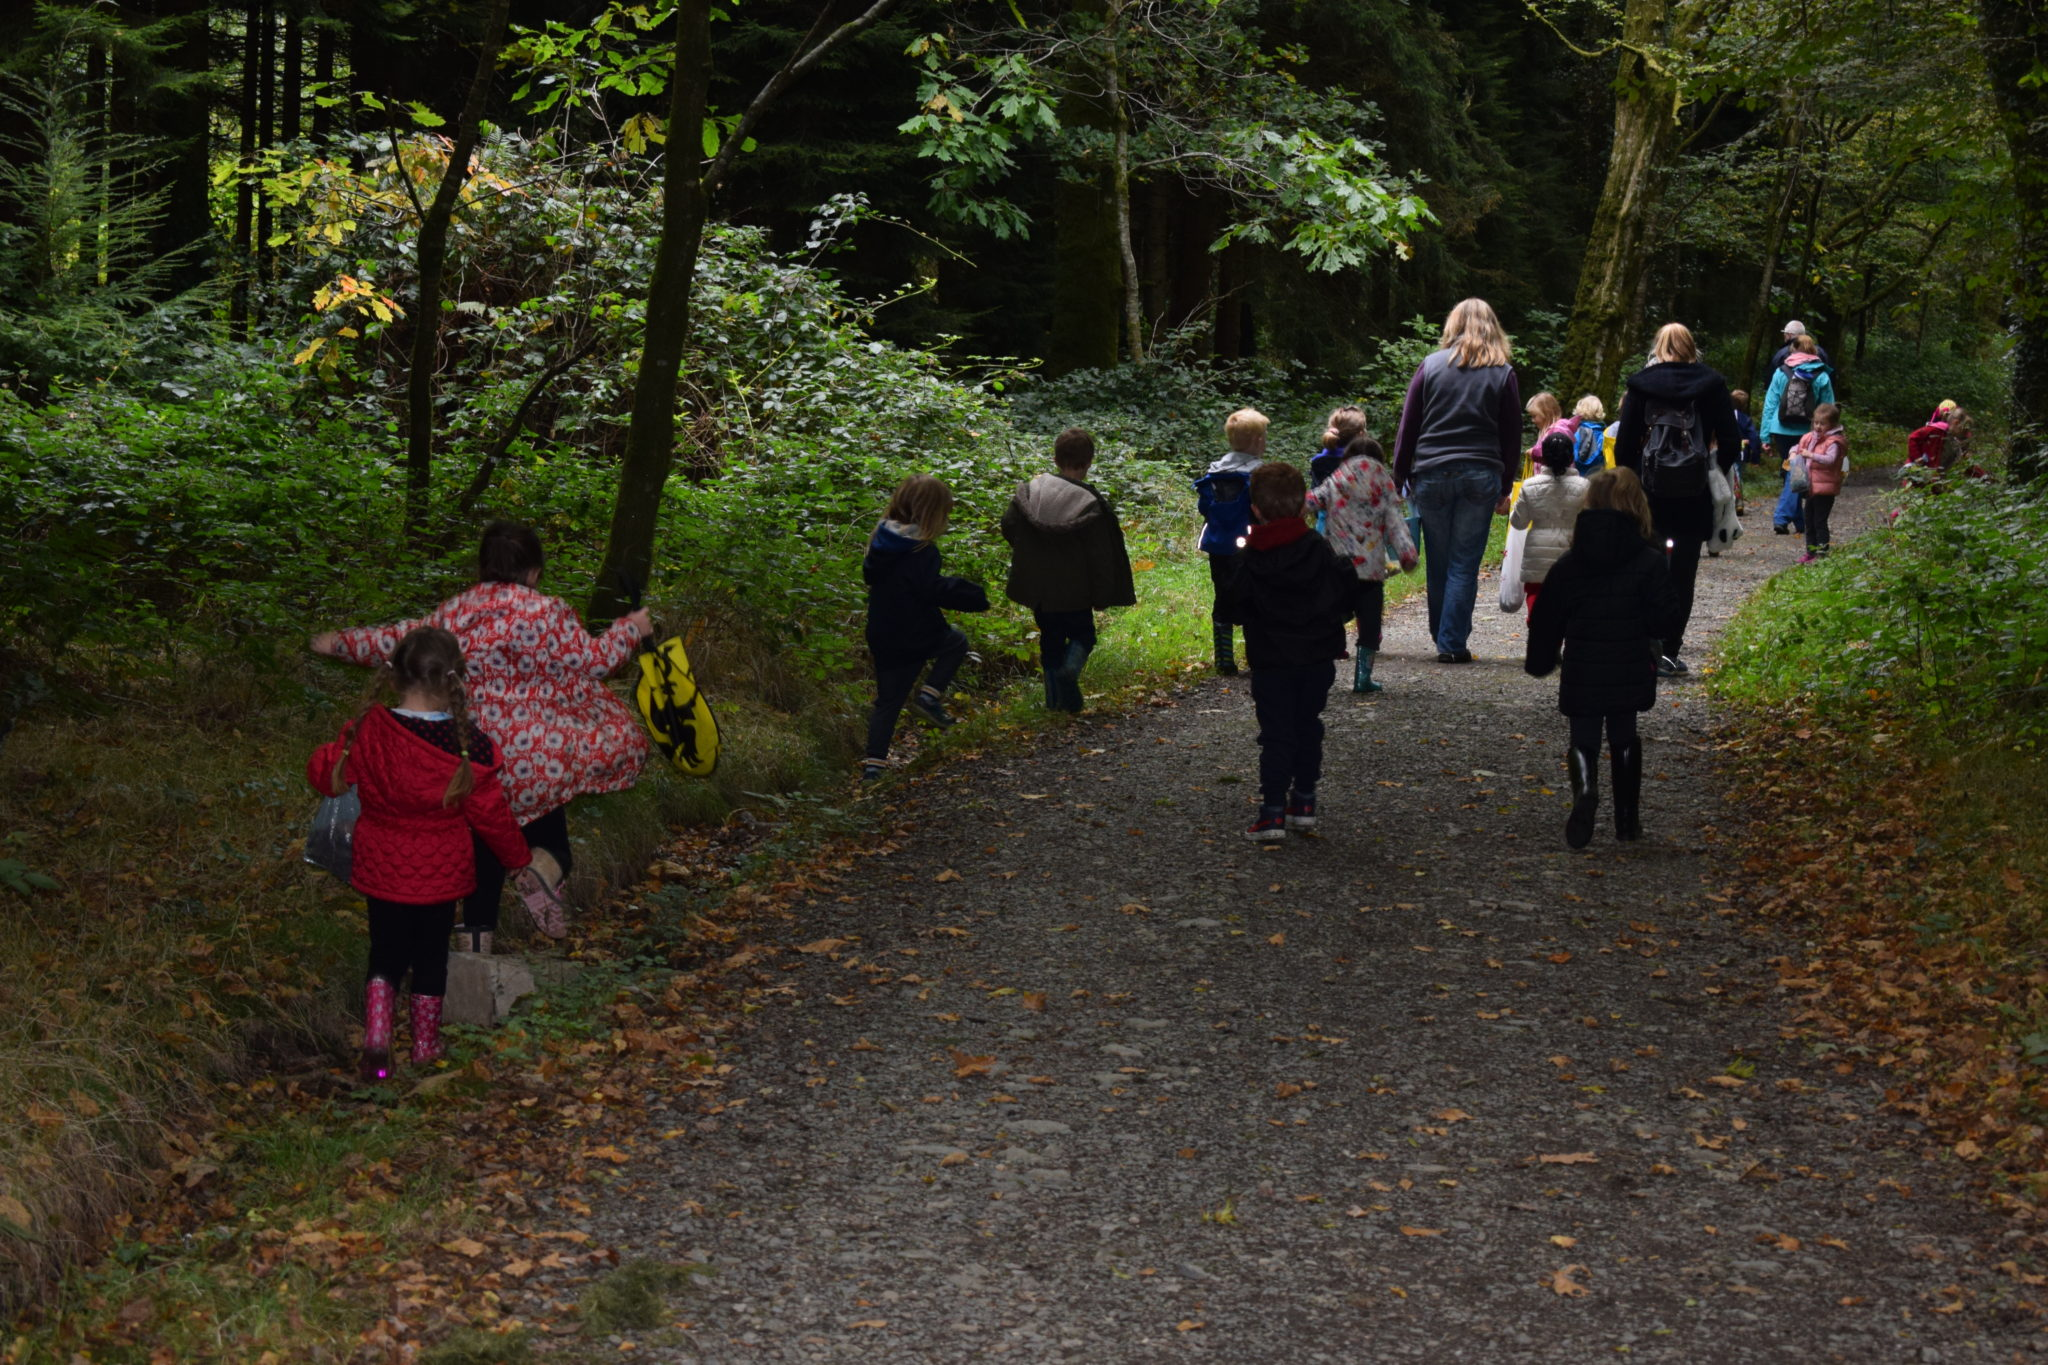 Walk in woods with school children for Tree Day